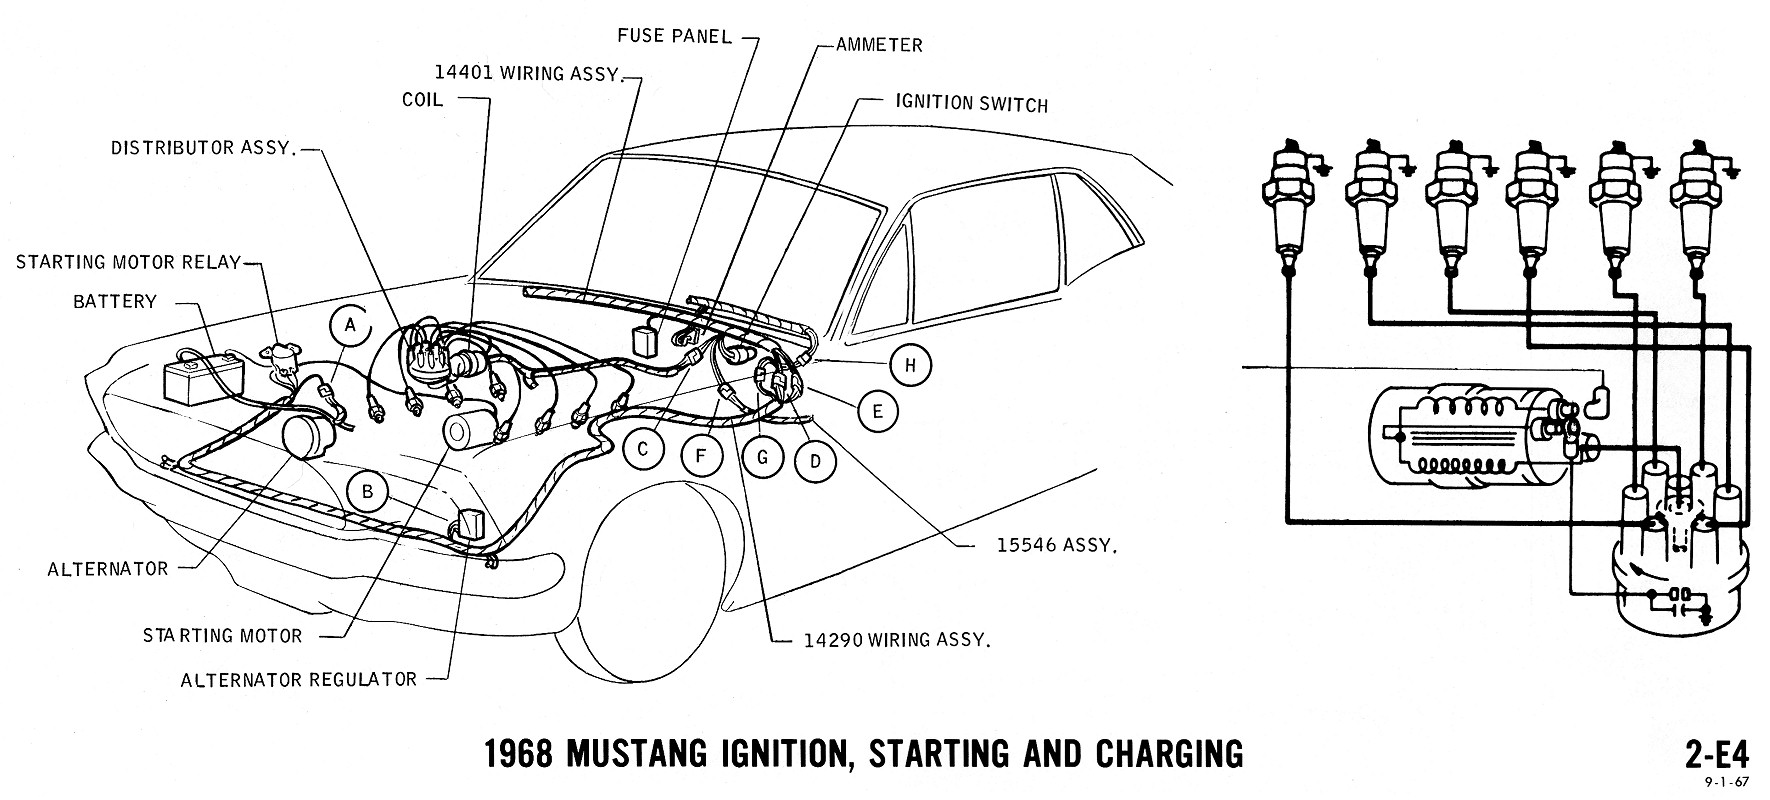 67 Ford Mustang Ignition Wiring Just Another Diagram Blog 69 Coil 1968 Diagrams And Vacuum Schematics Average Joe Rh Averagejoerestoration Com Dash